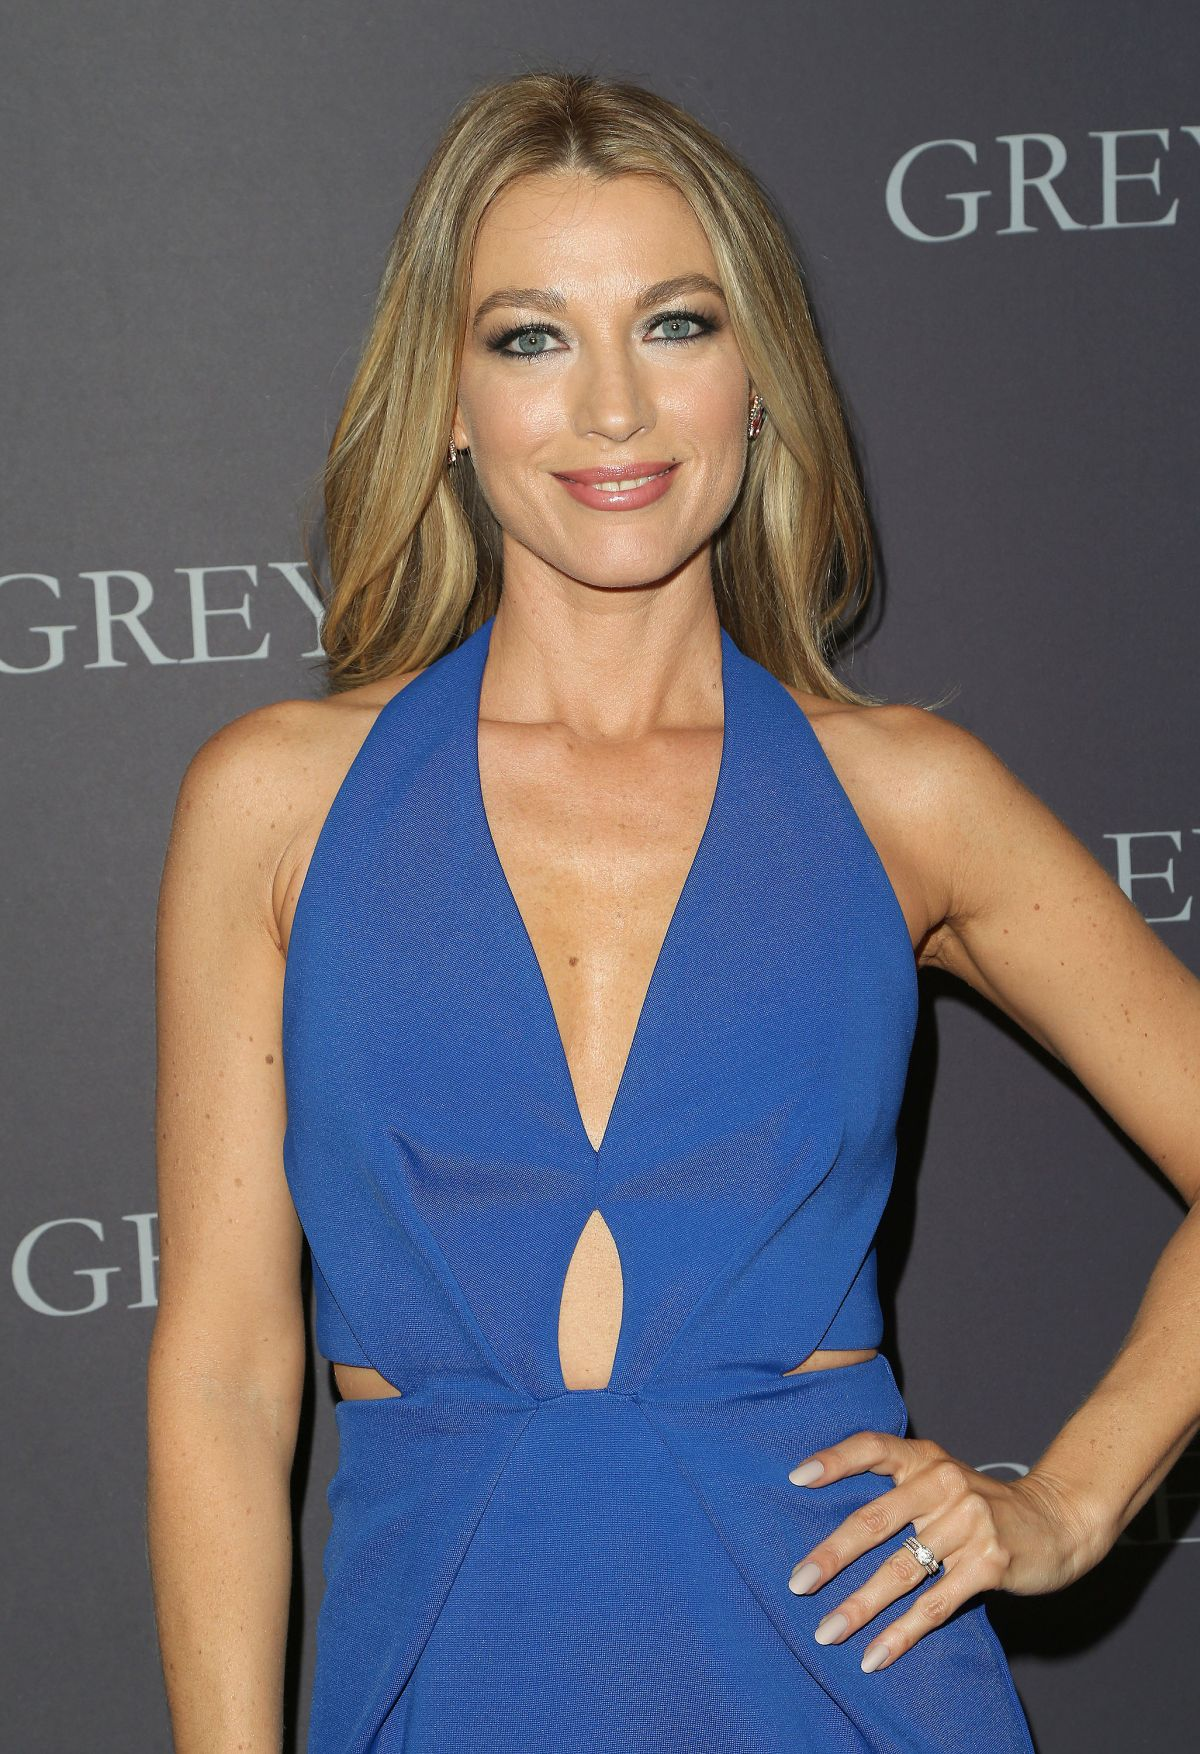 NATALIE ZEA at Grey Lady Premiere in Los Angeles 04/26/2017